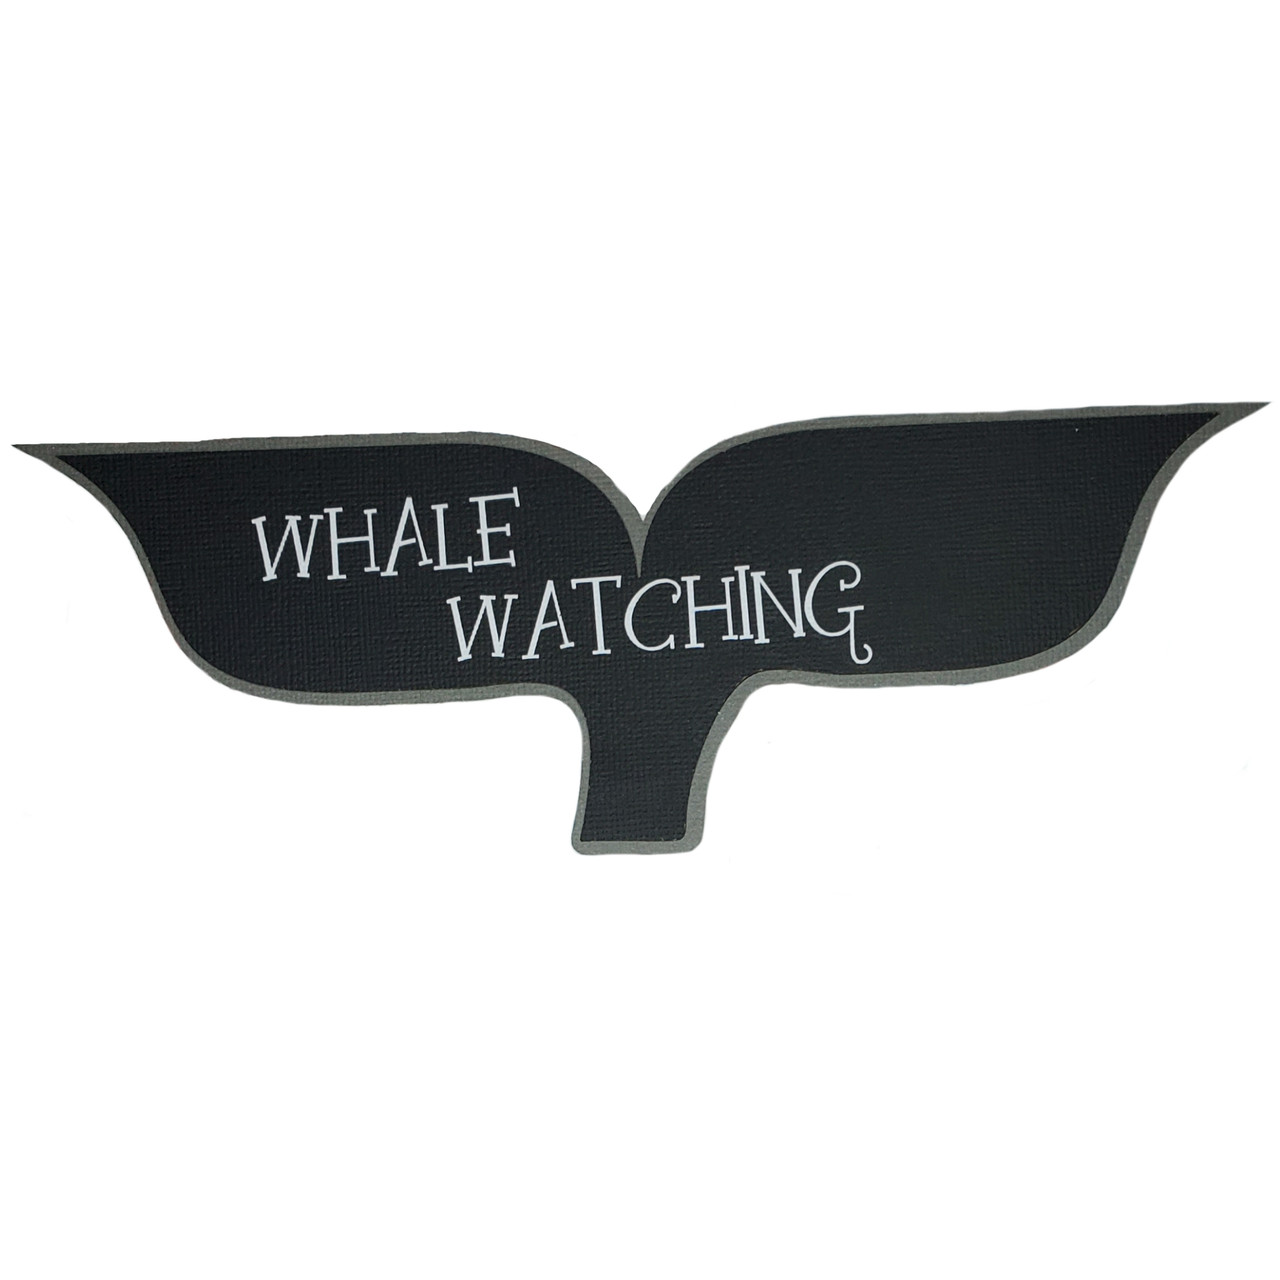 Whale Watching 9.5 x 3 Laser Cut Scrapbook Embellishment by SSC Laser Designs